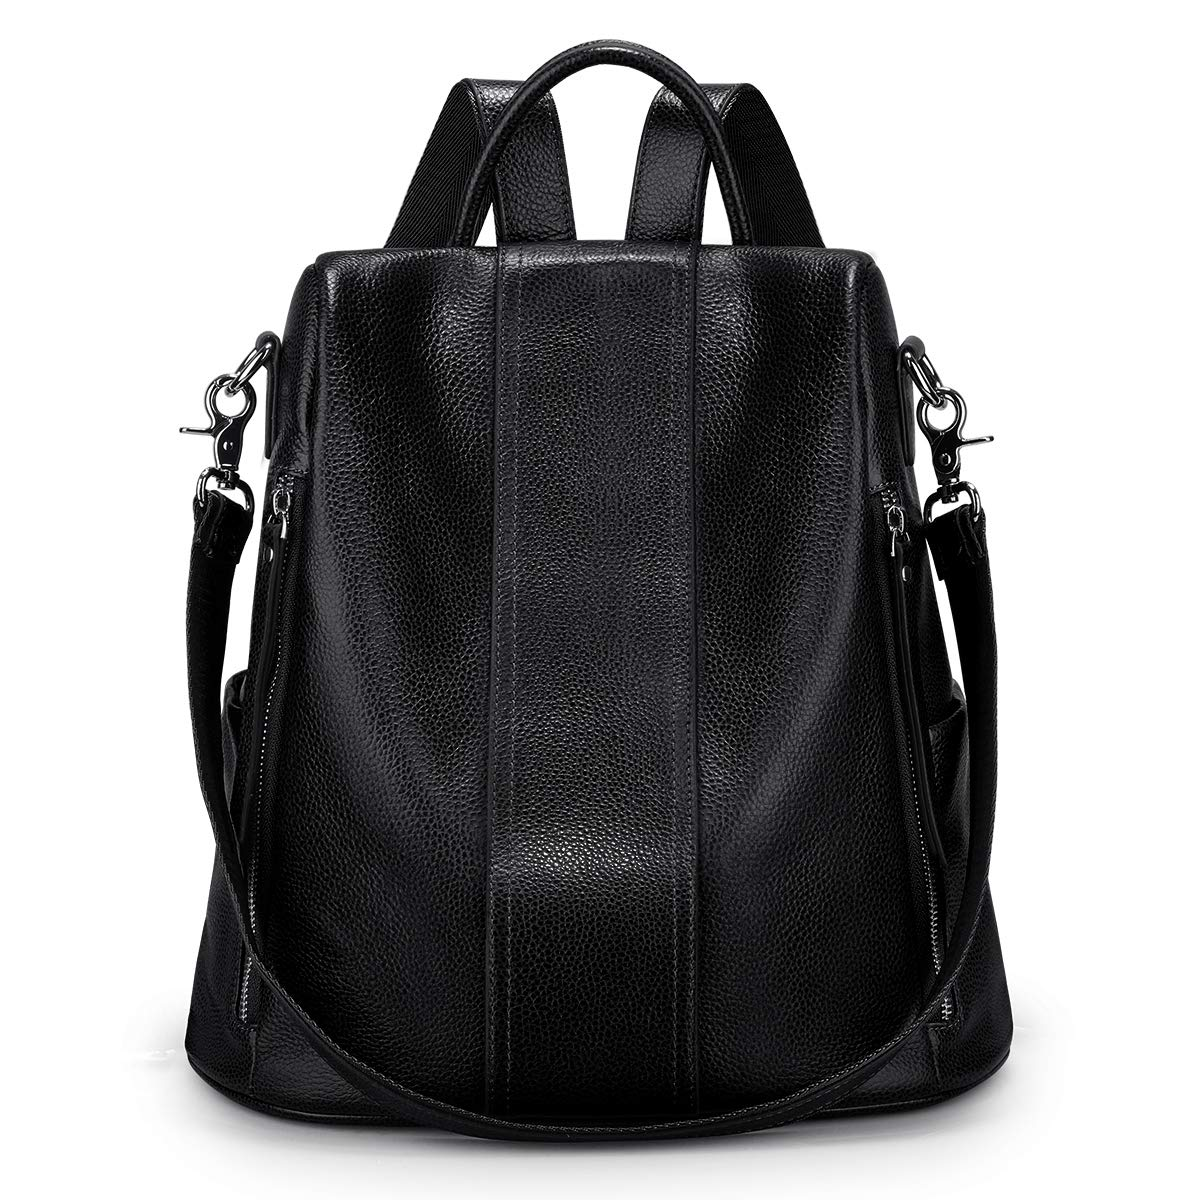 S-ZONE Soft Leather Backpack for Women Anti-theft Rucksack Ladies Waterproof Shoulder Bag(black) by S-ZONE